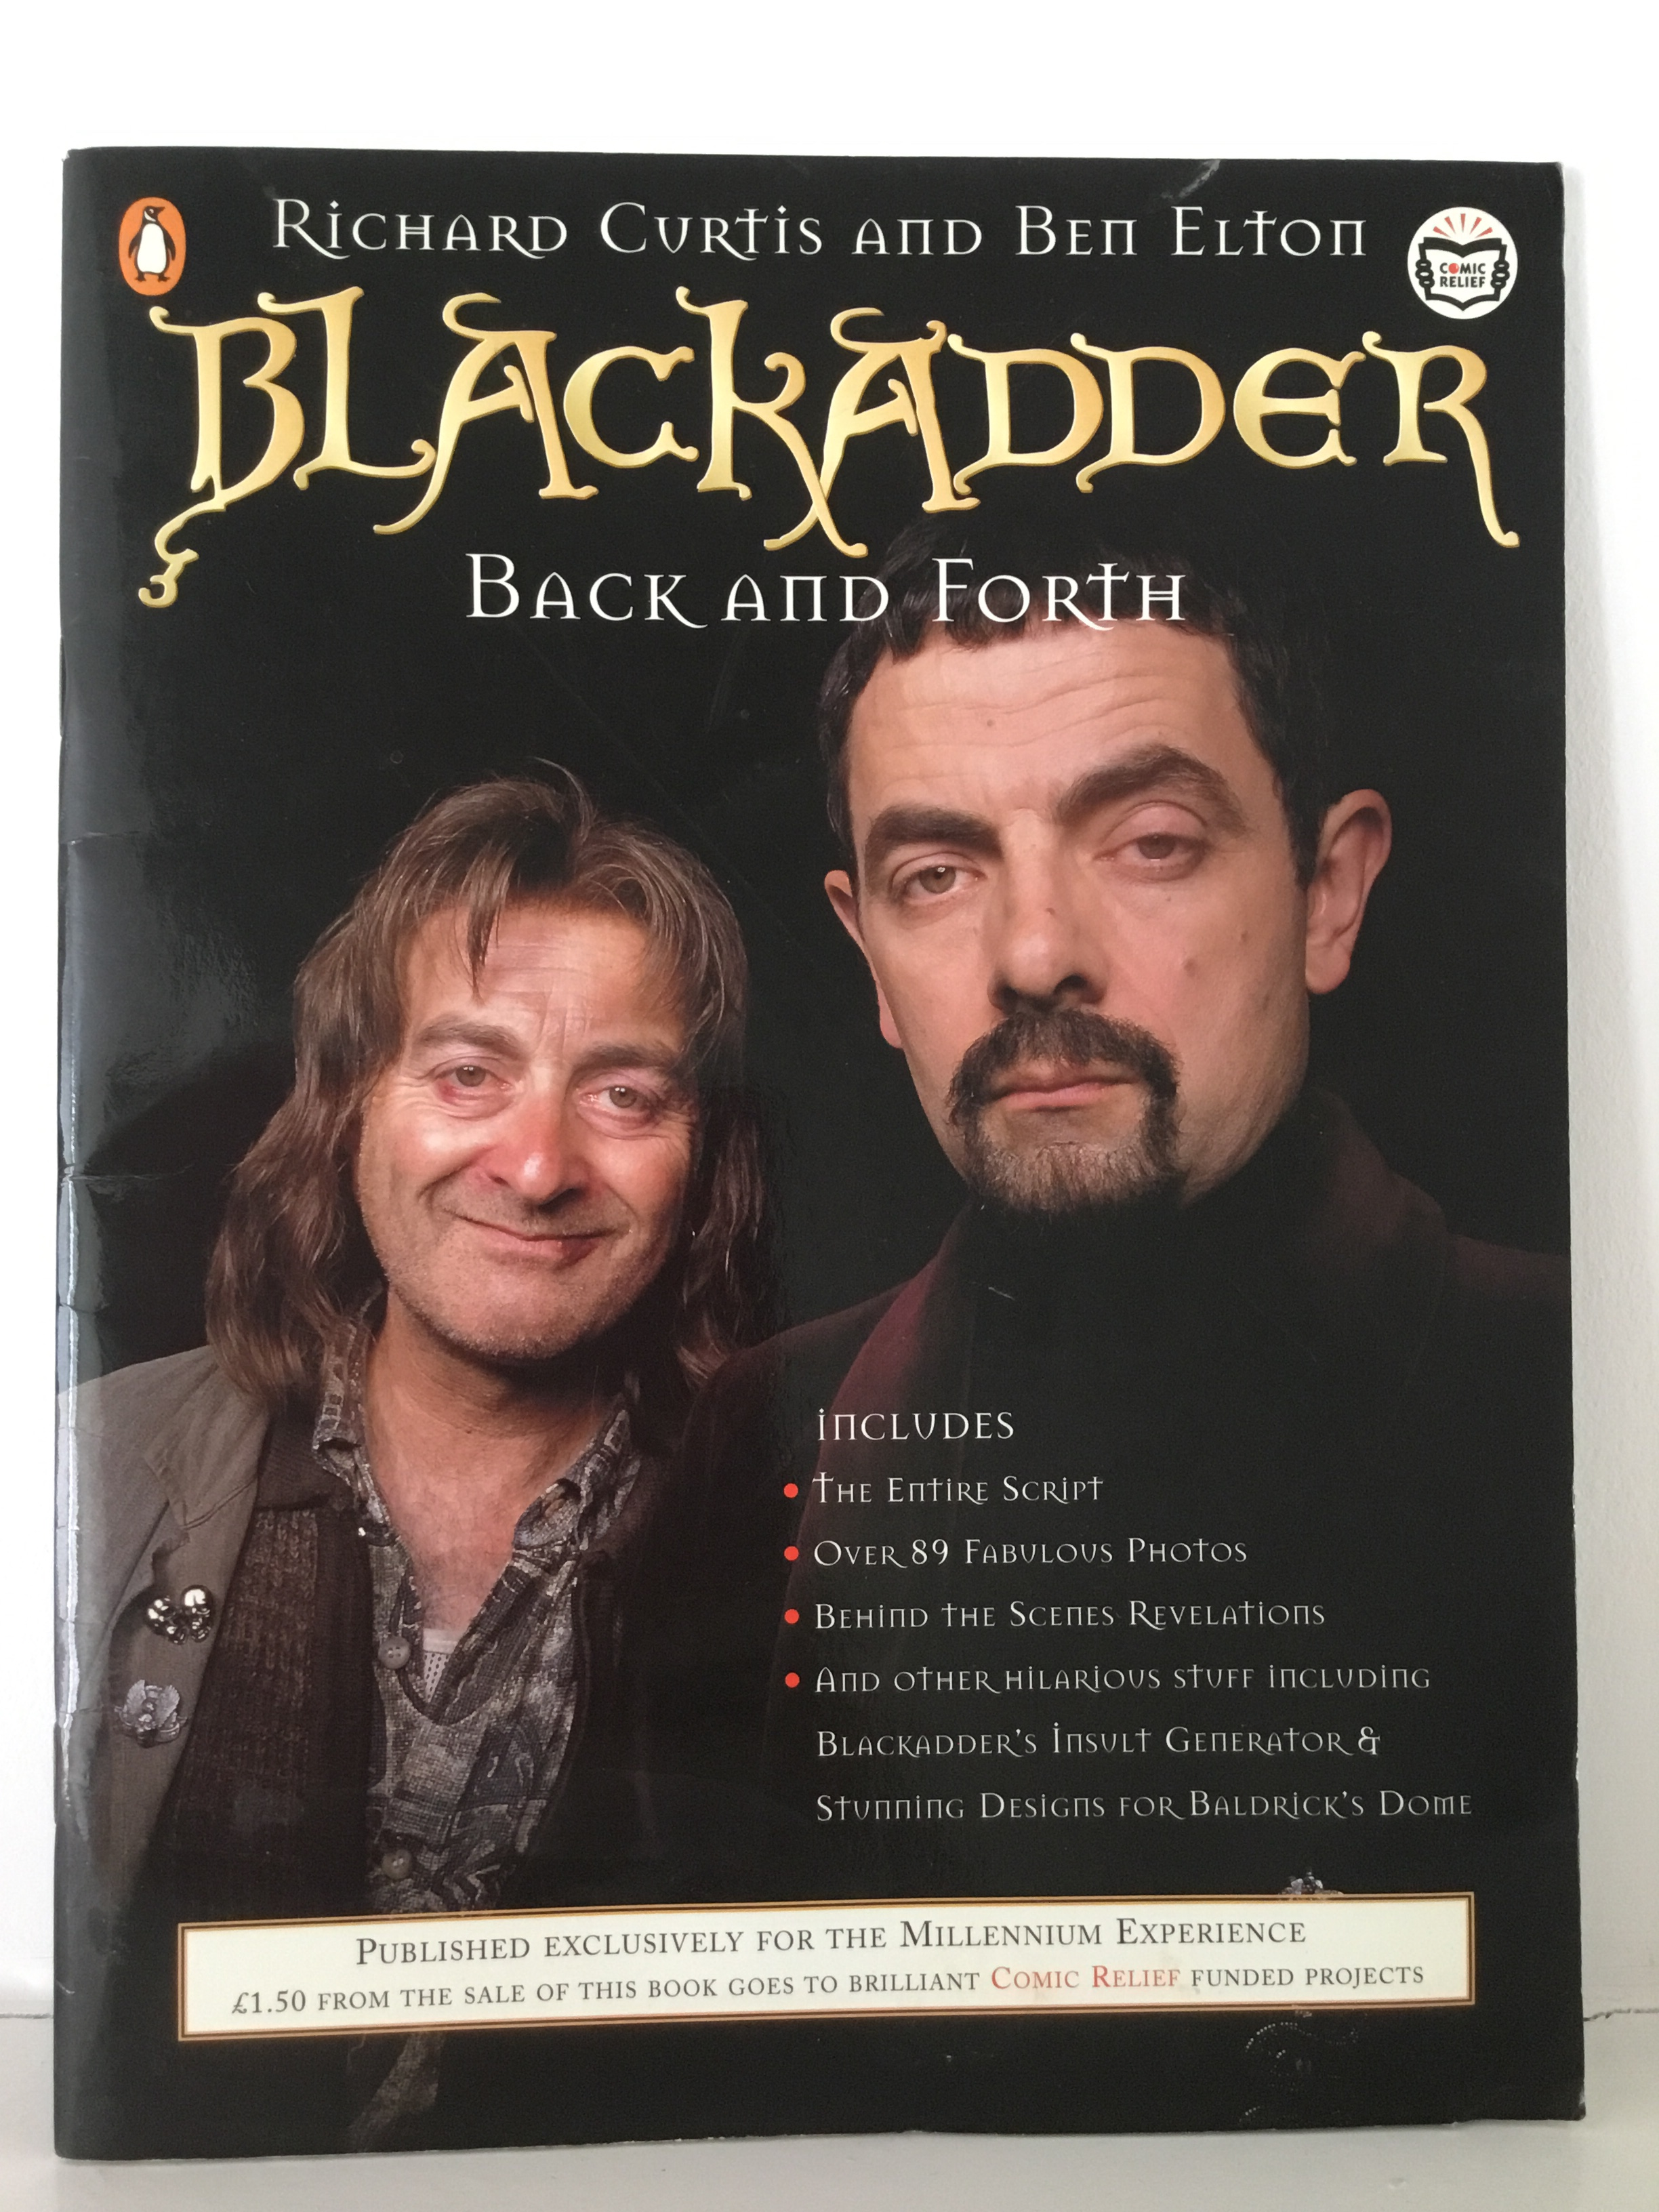 Books, Blackadder Back and Forth